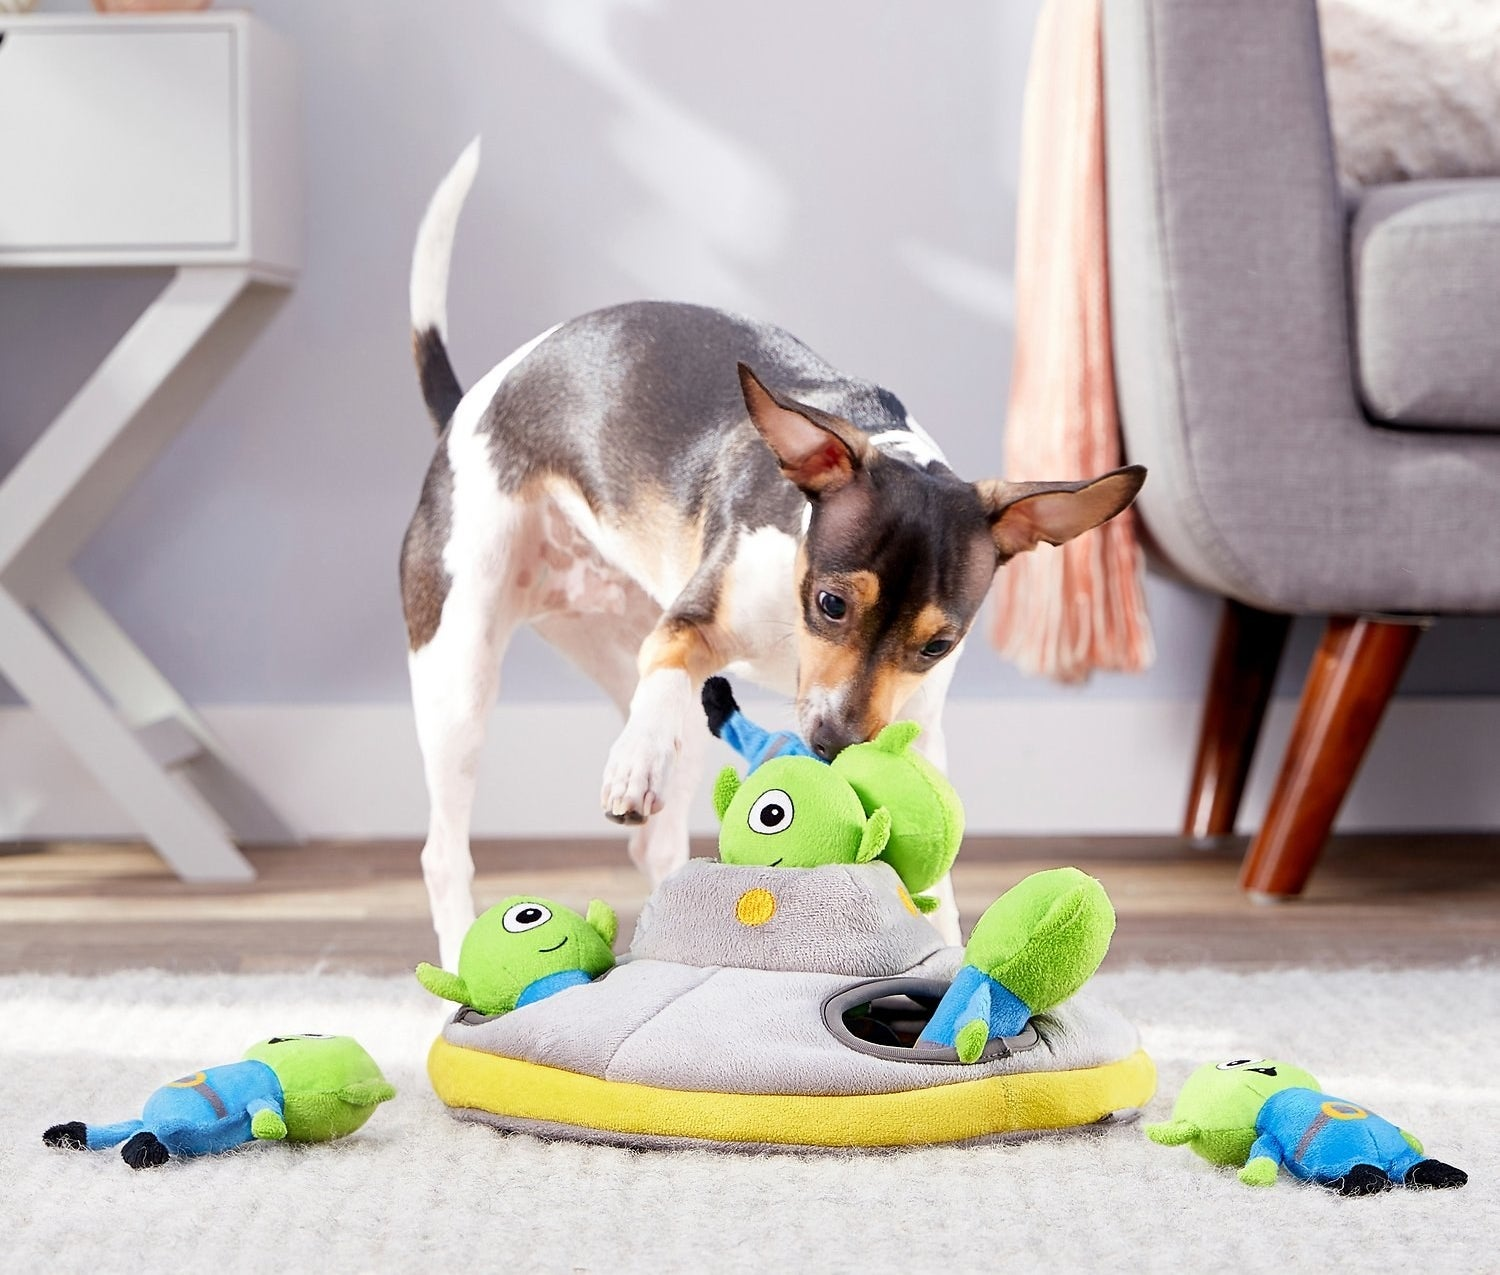 dog playing with little alien plushies